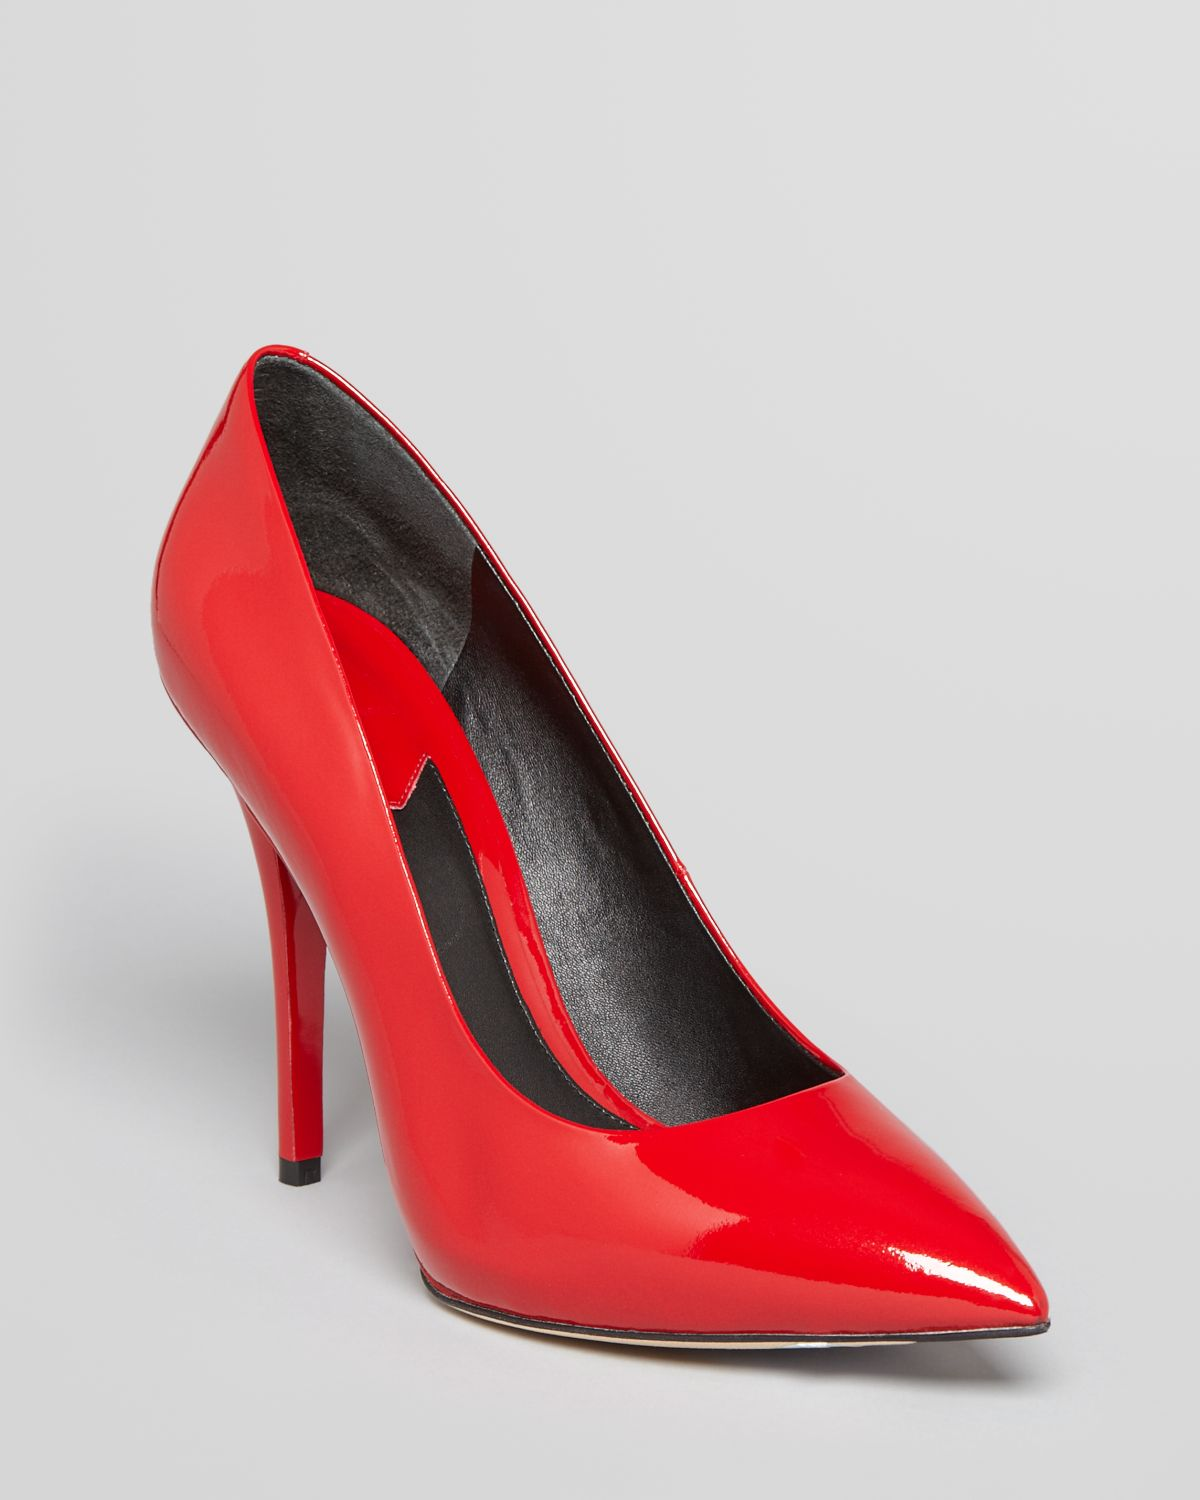 B brian atwood Pointed Toe Platform Pumps Desires High Heel in Red ...